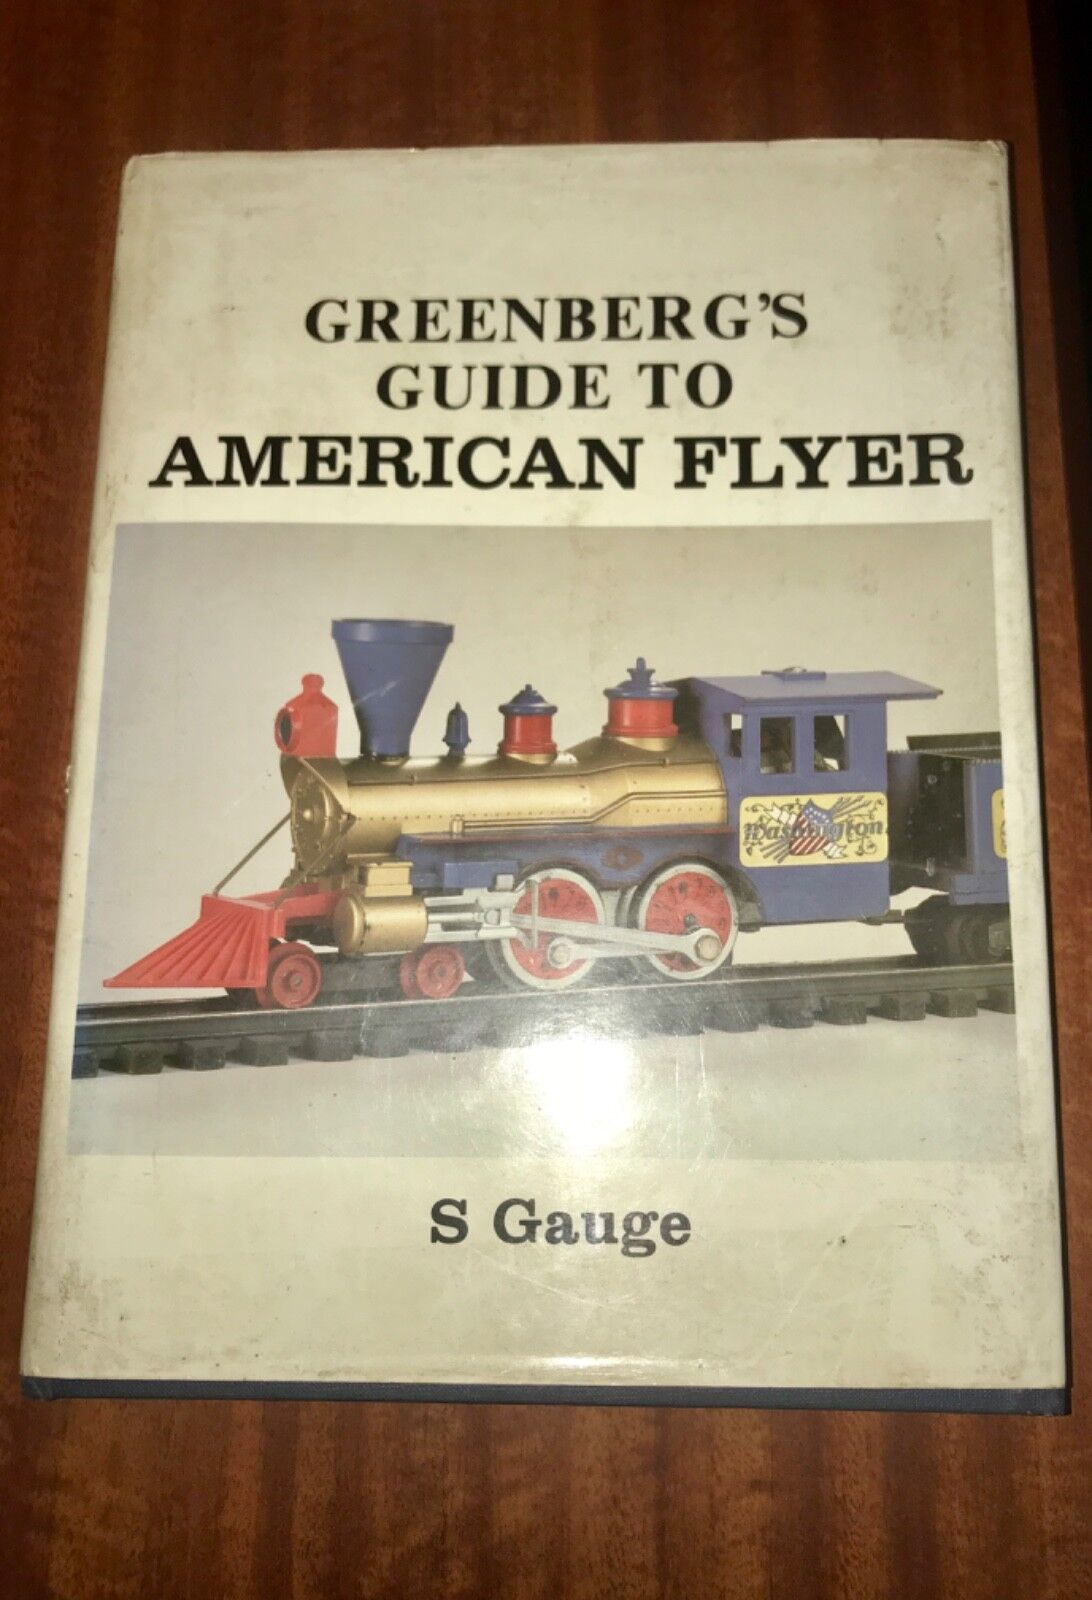 verdeberg's Guide to American Flyer S Gauge 1984 Colore Photos of Trains